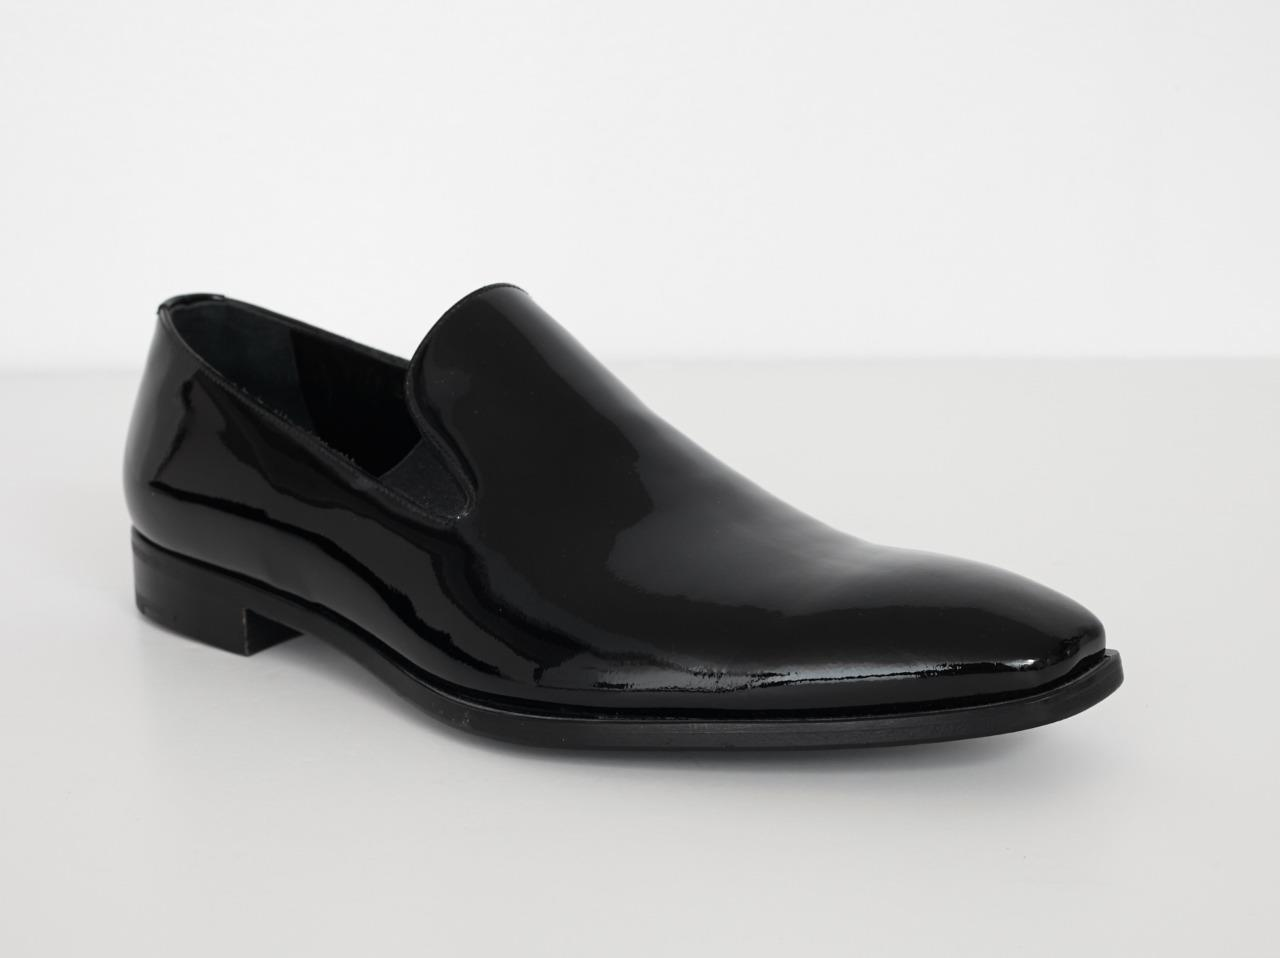 How To Shine Patent Leather Shoes At Home